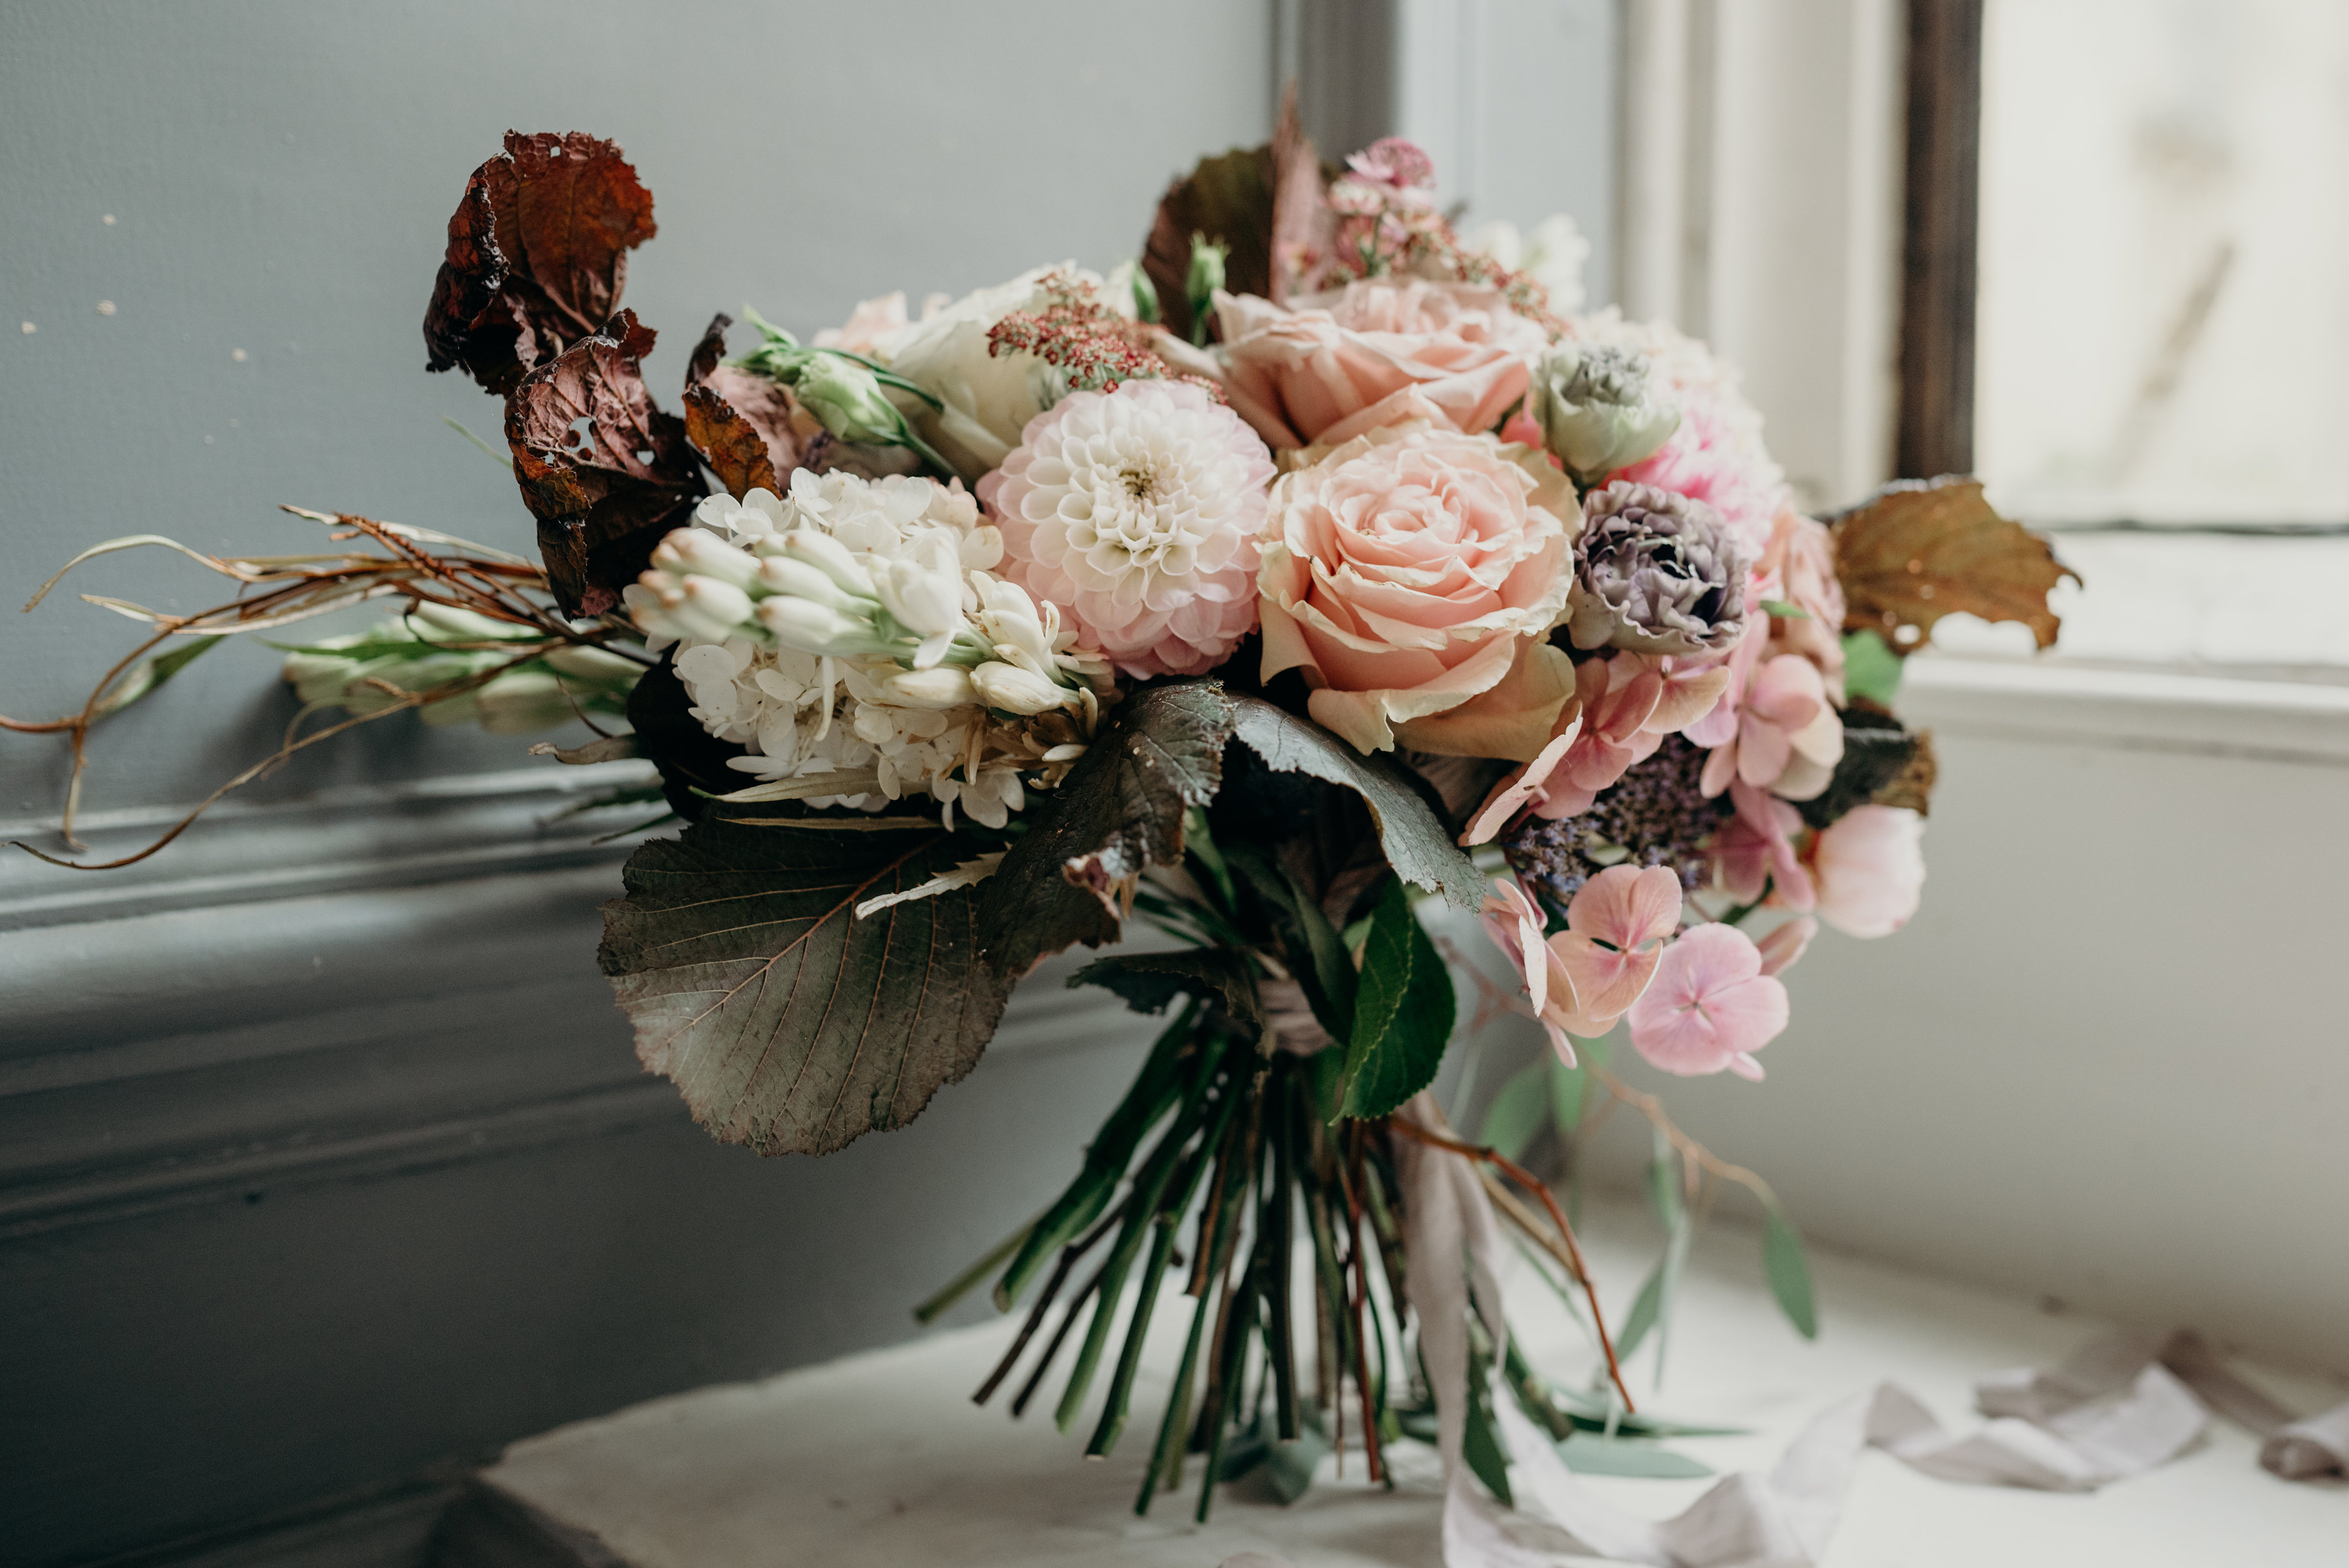 Vintage Lux wedding flowers